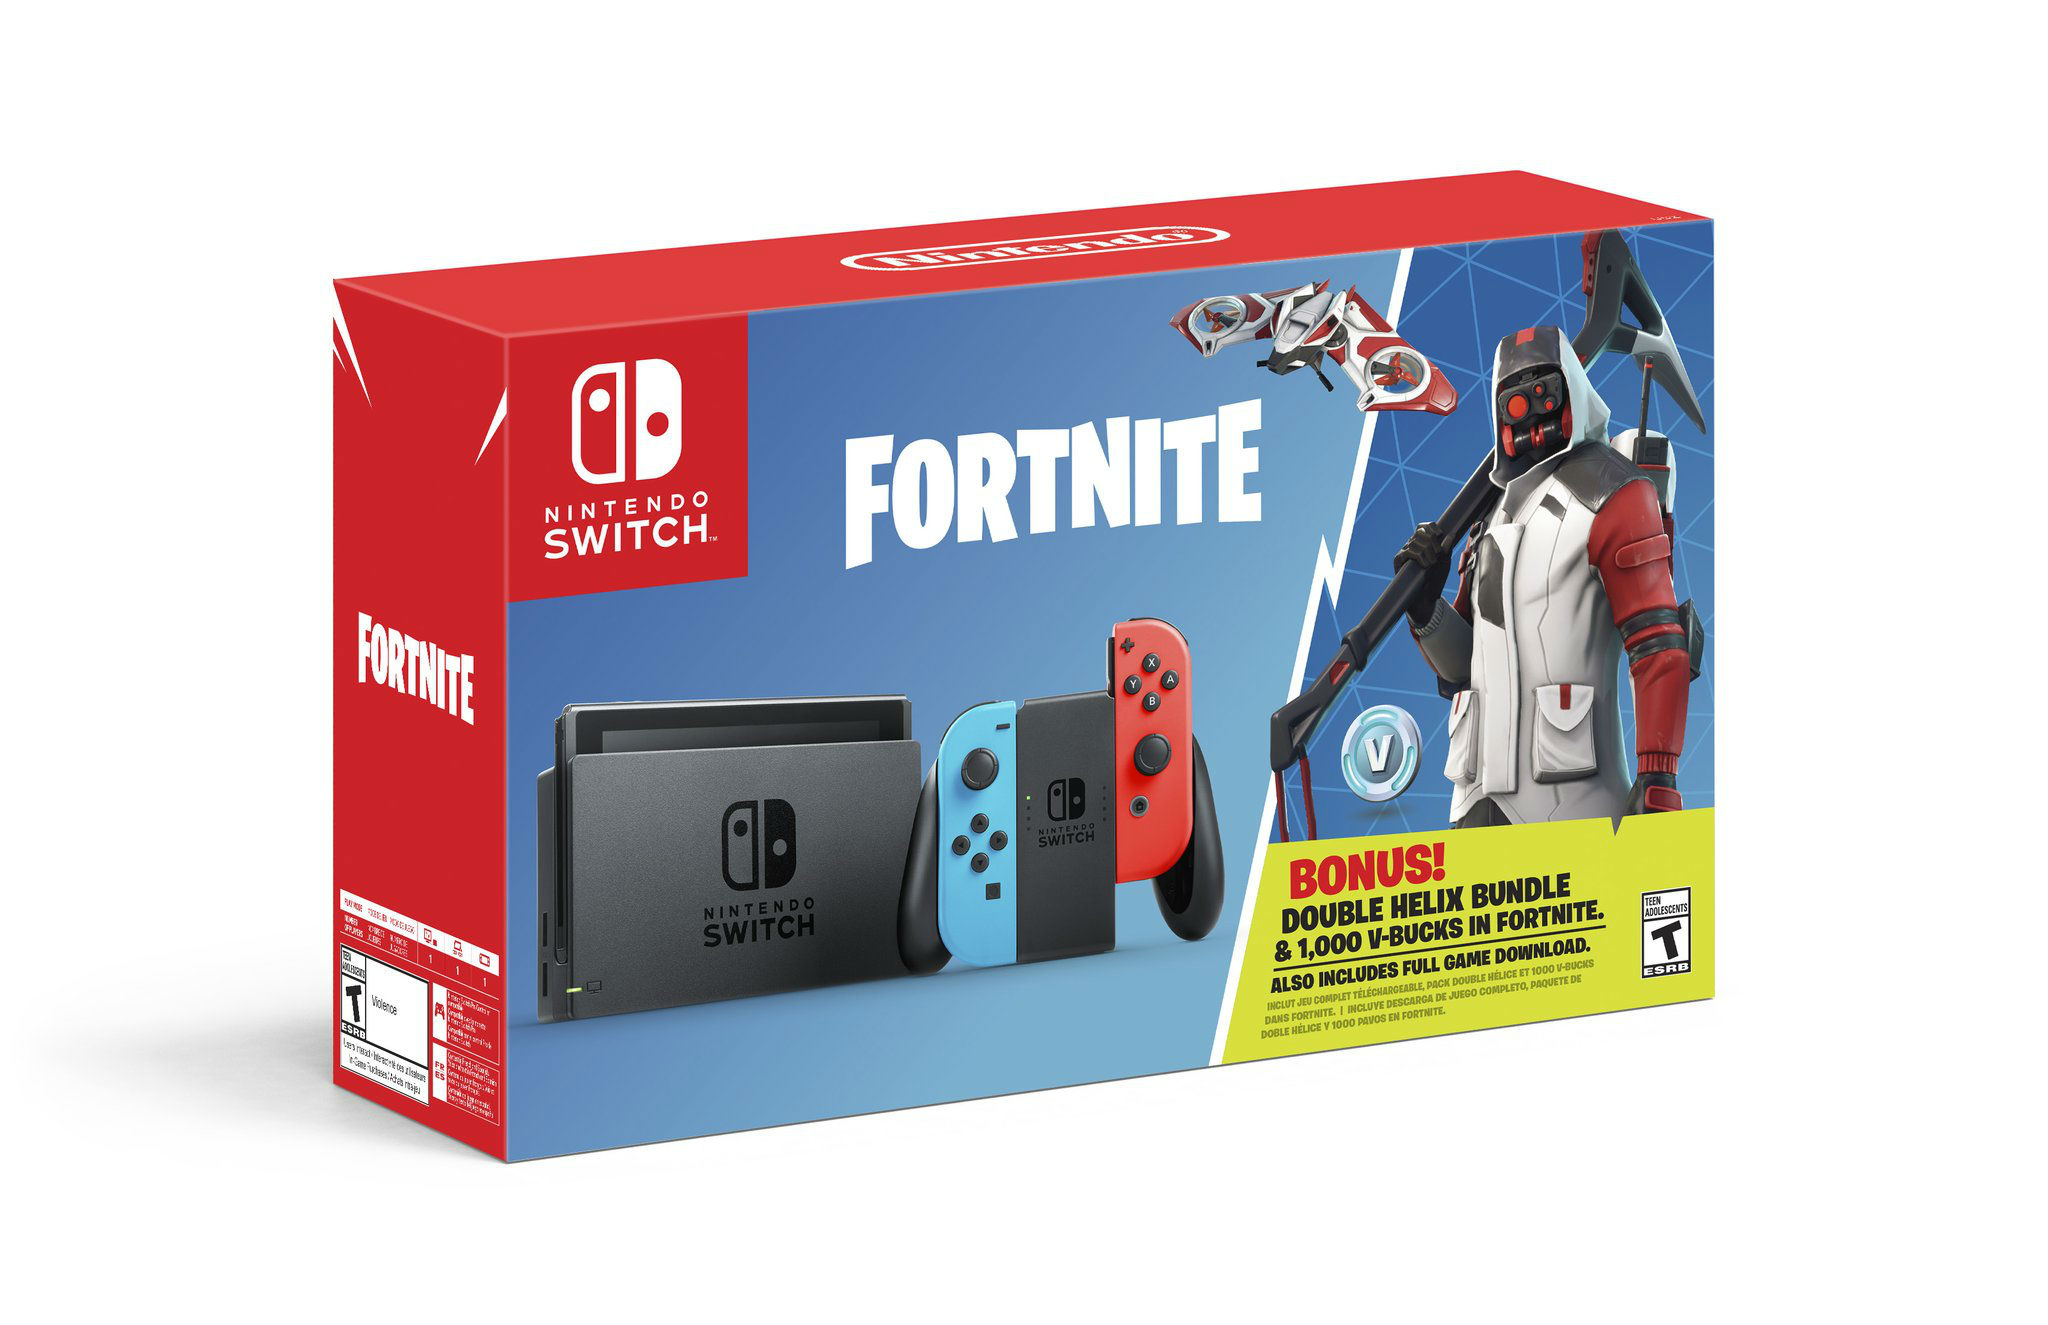 Nintendo gets in on the Fortnite craze with a Switch bundle screenshot